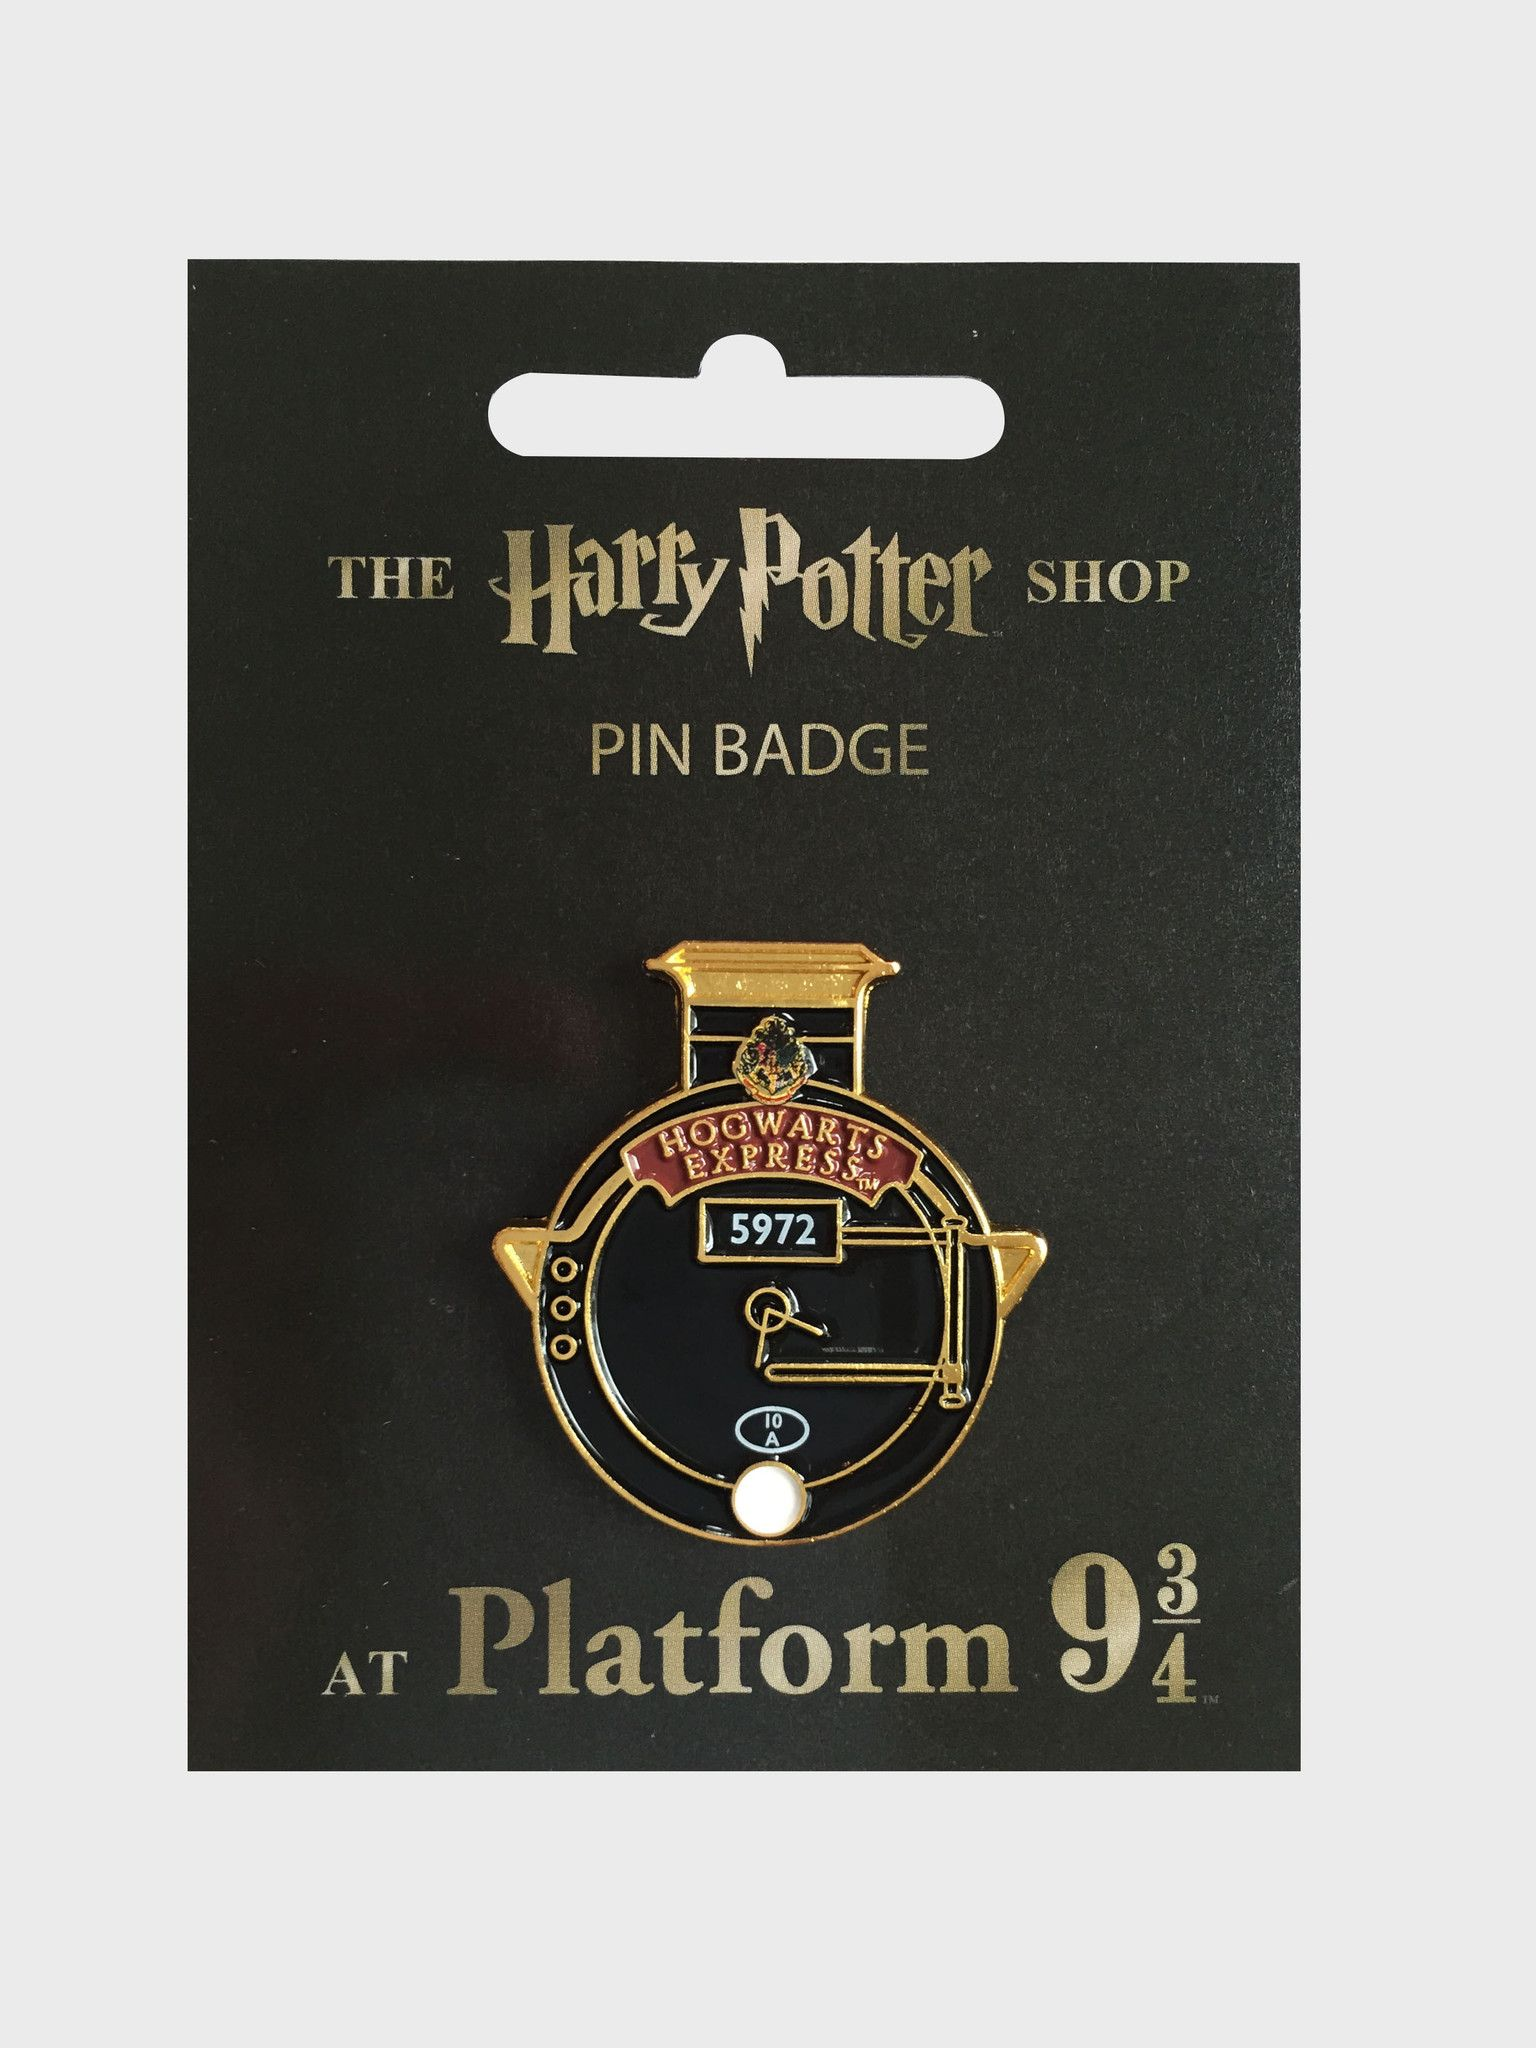 ab9b4e6ebb5 Hogwarts Express Pin Badge in 2019